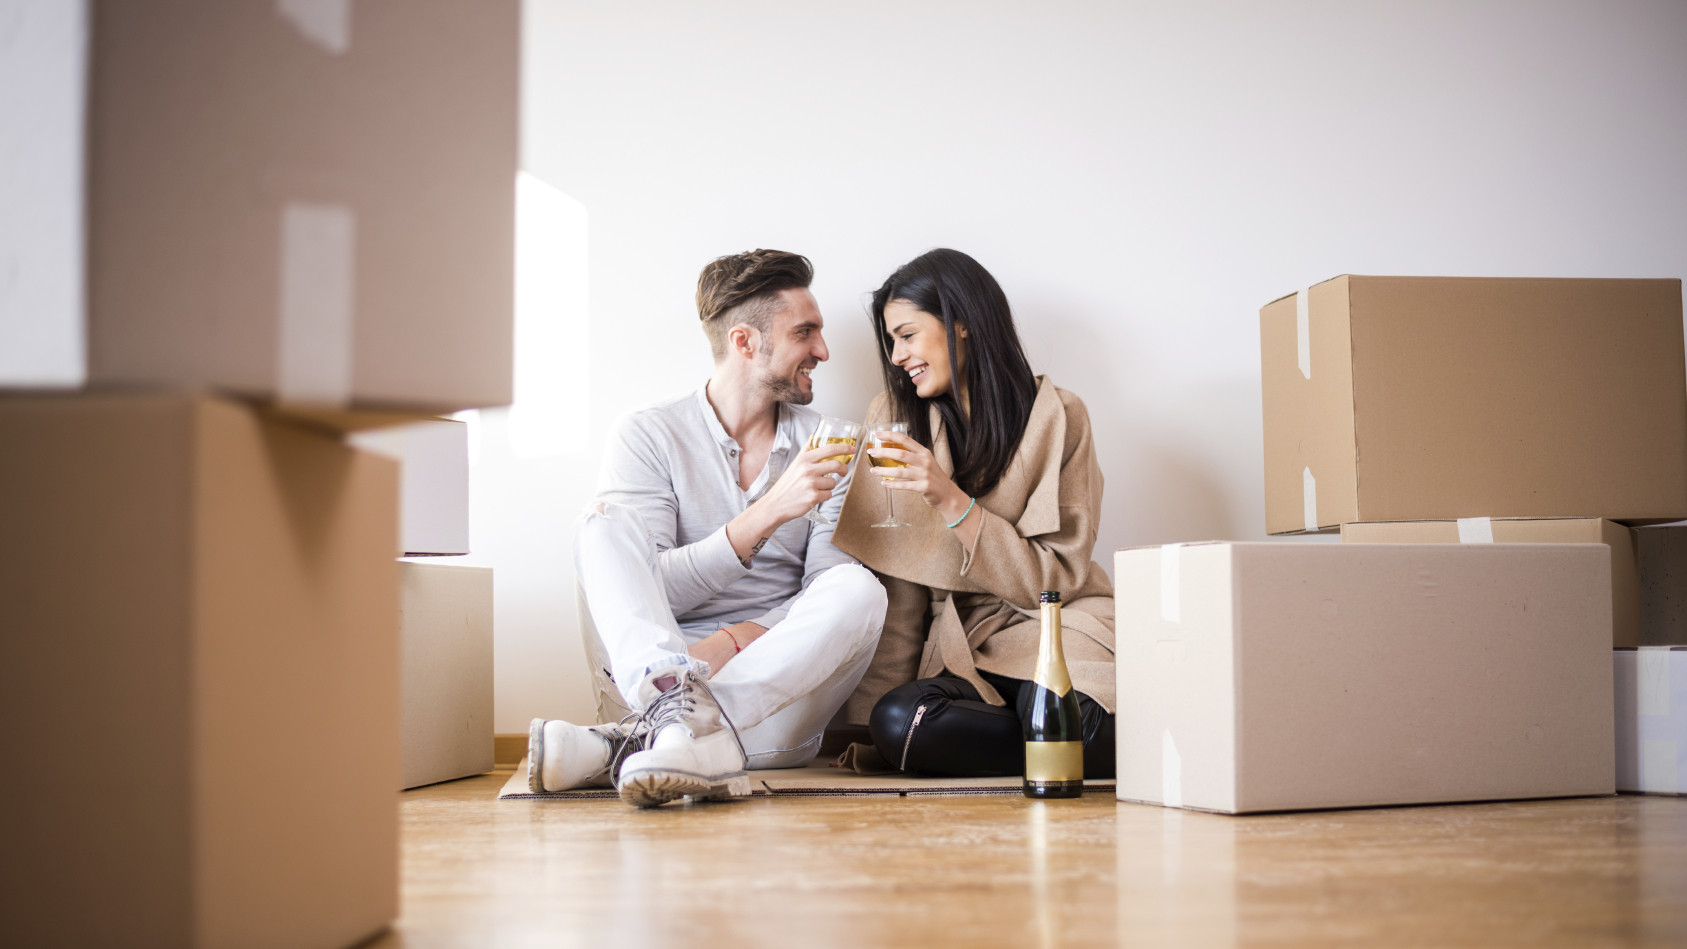 common relocation package options moving com don t forget the spouse · moving in together 5 things you should talk about first